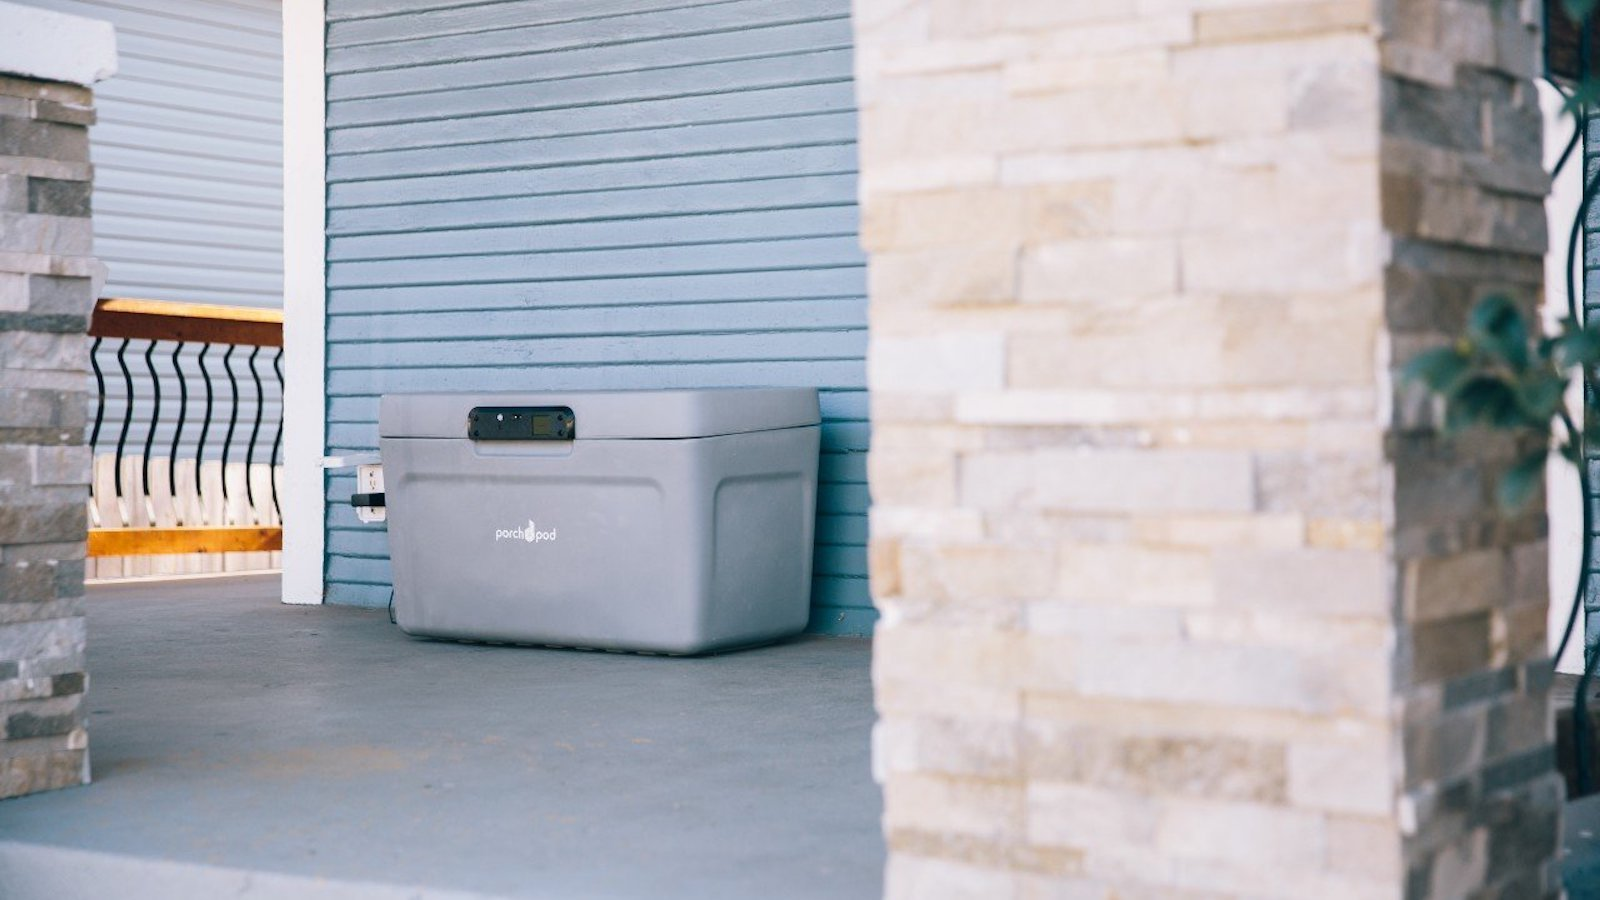 Porch Pod delivery safes protect all of your packages